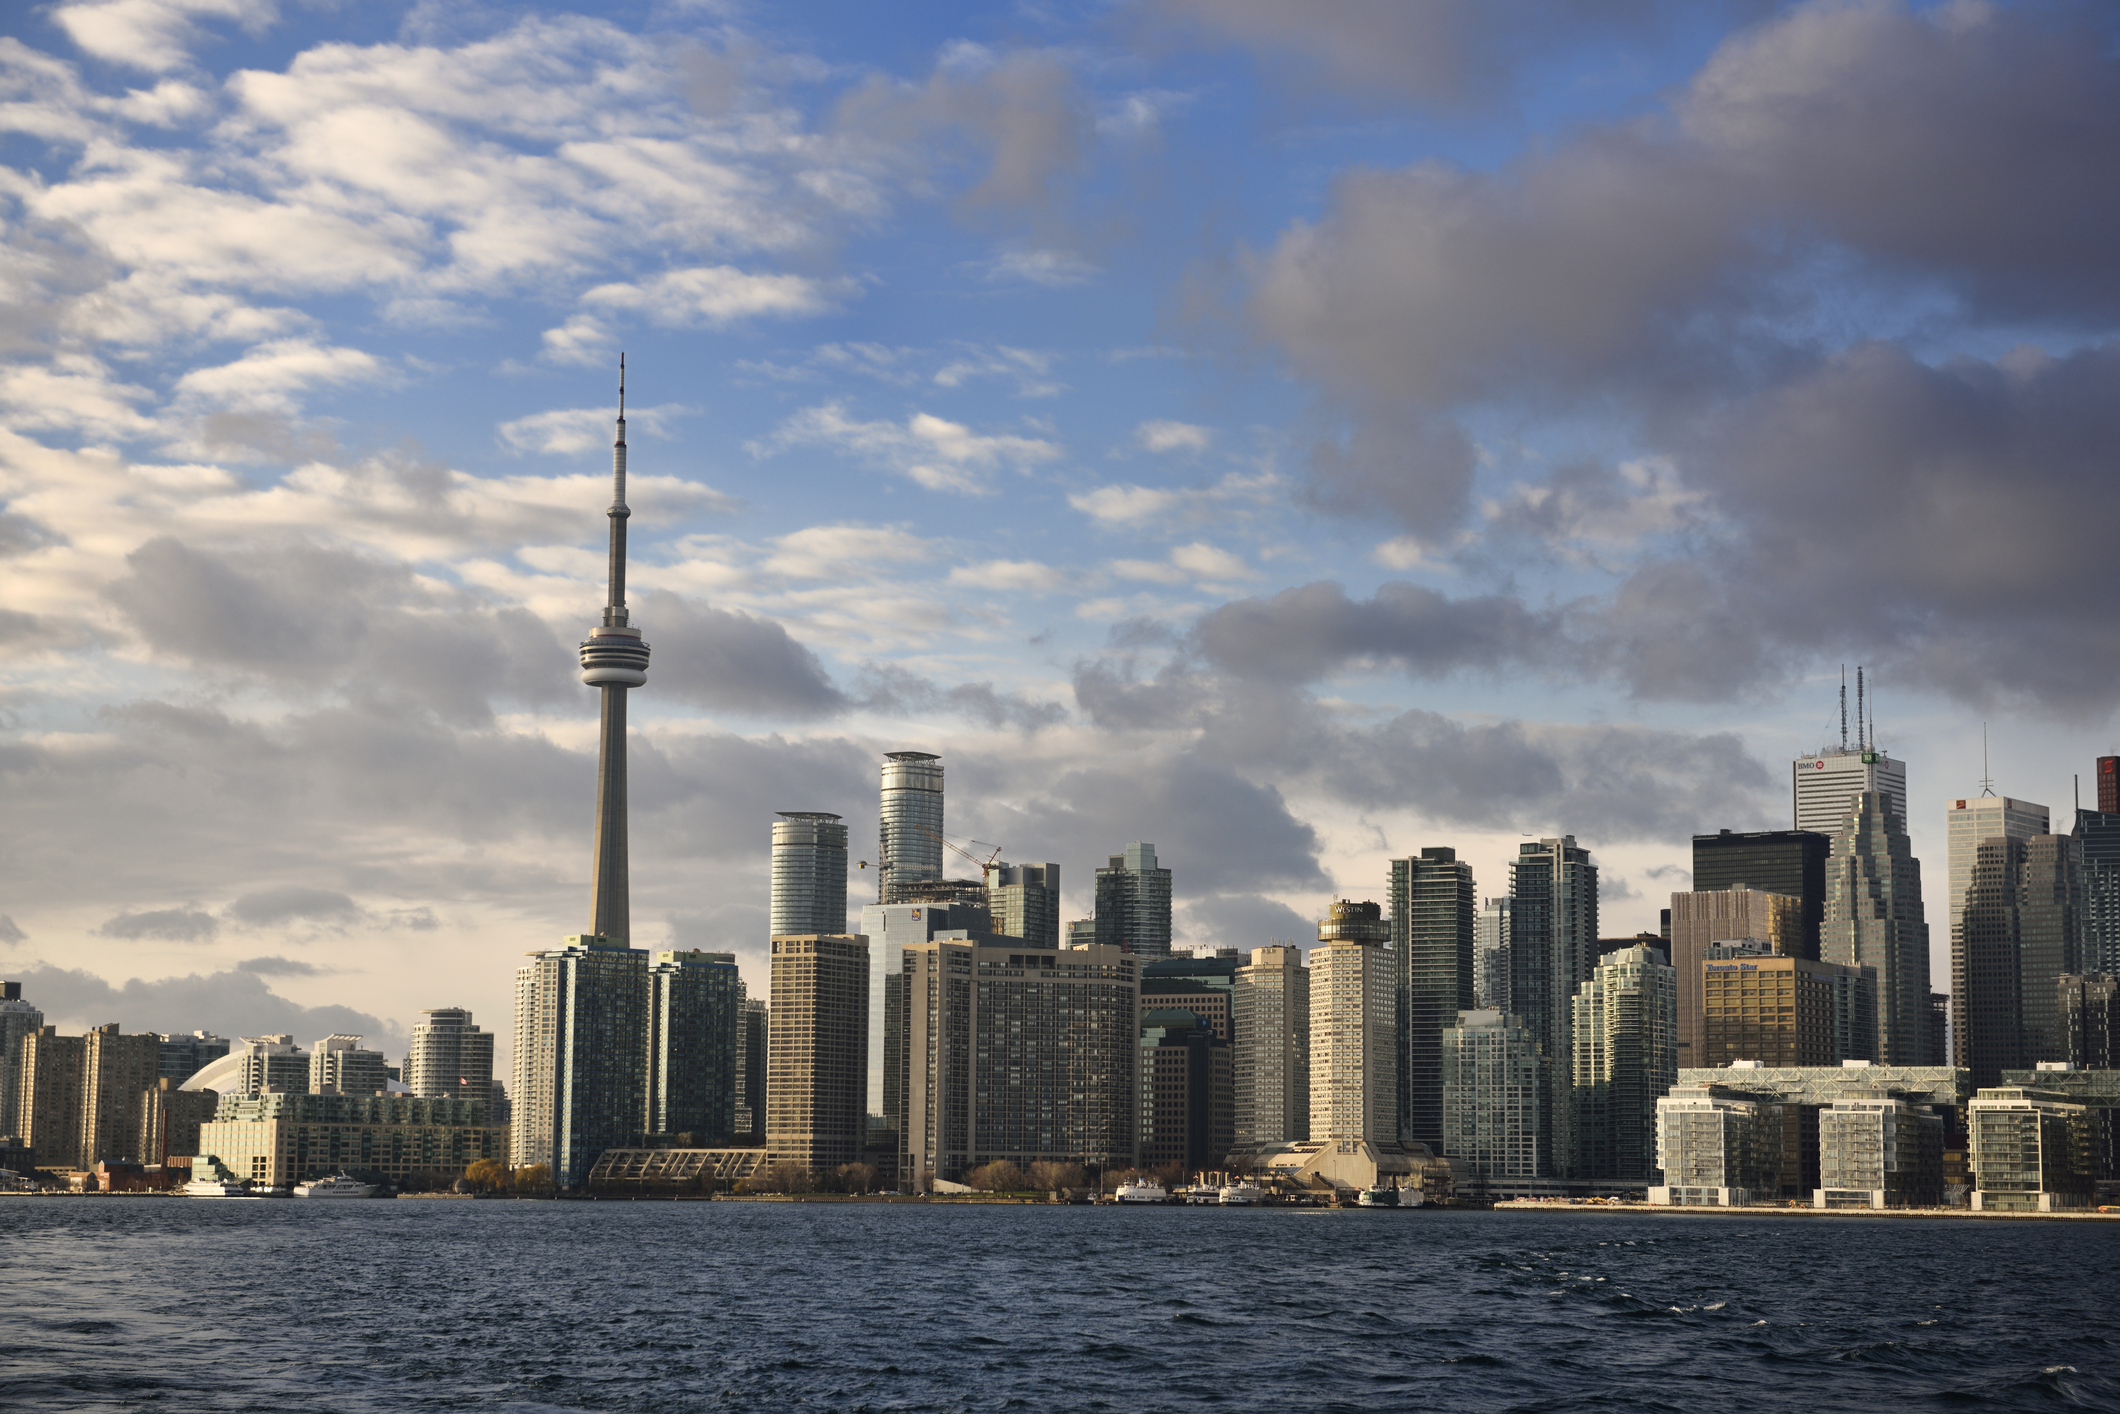 Evening sunlight on Toronto skyline high rise towers from Ferry in harbor